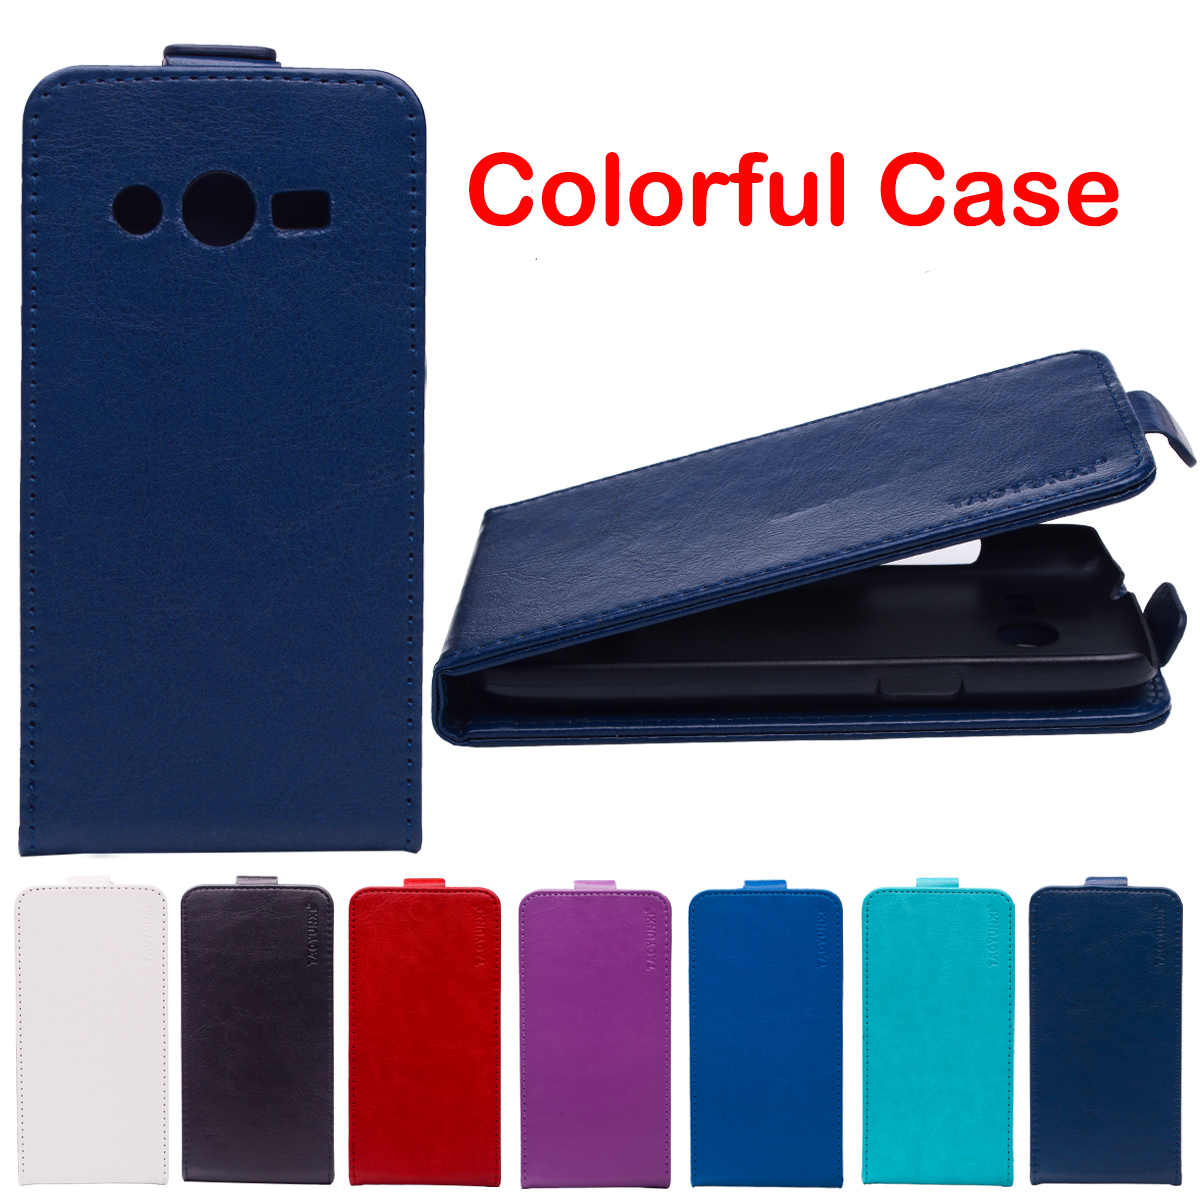 PU Leather Case For Lenovo Z5 P70 Vibe Shot Z90 Vibe S1 Lite P2 P1m K910 K80 S880 S860 S660 Z1 X2 X3 Lite Zuk Z2 Cover Cases